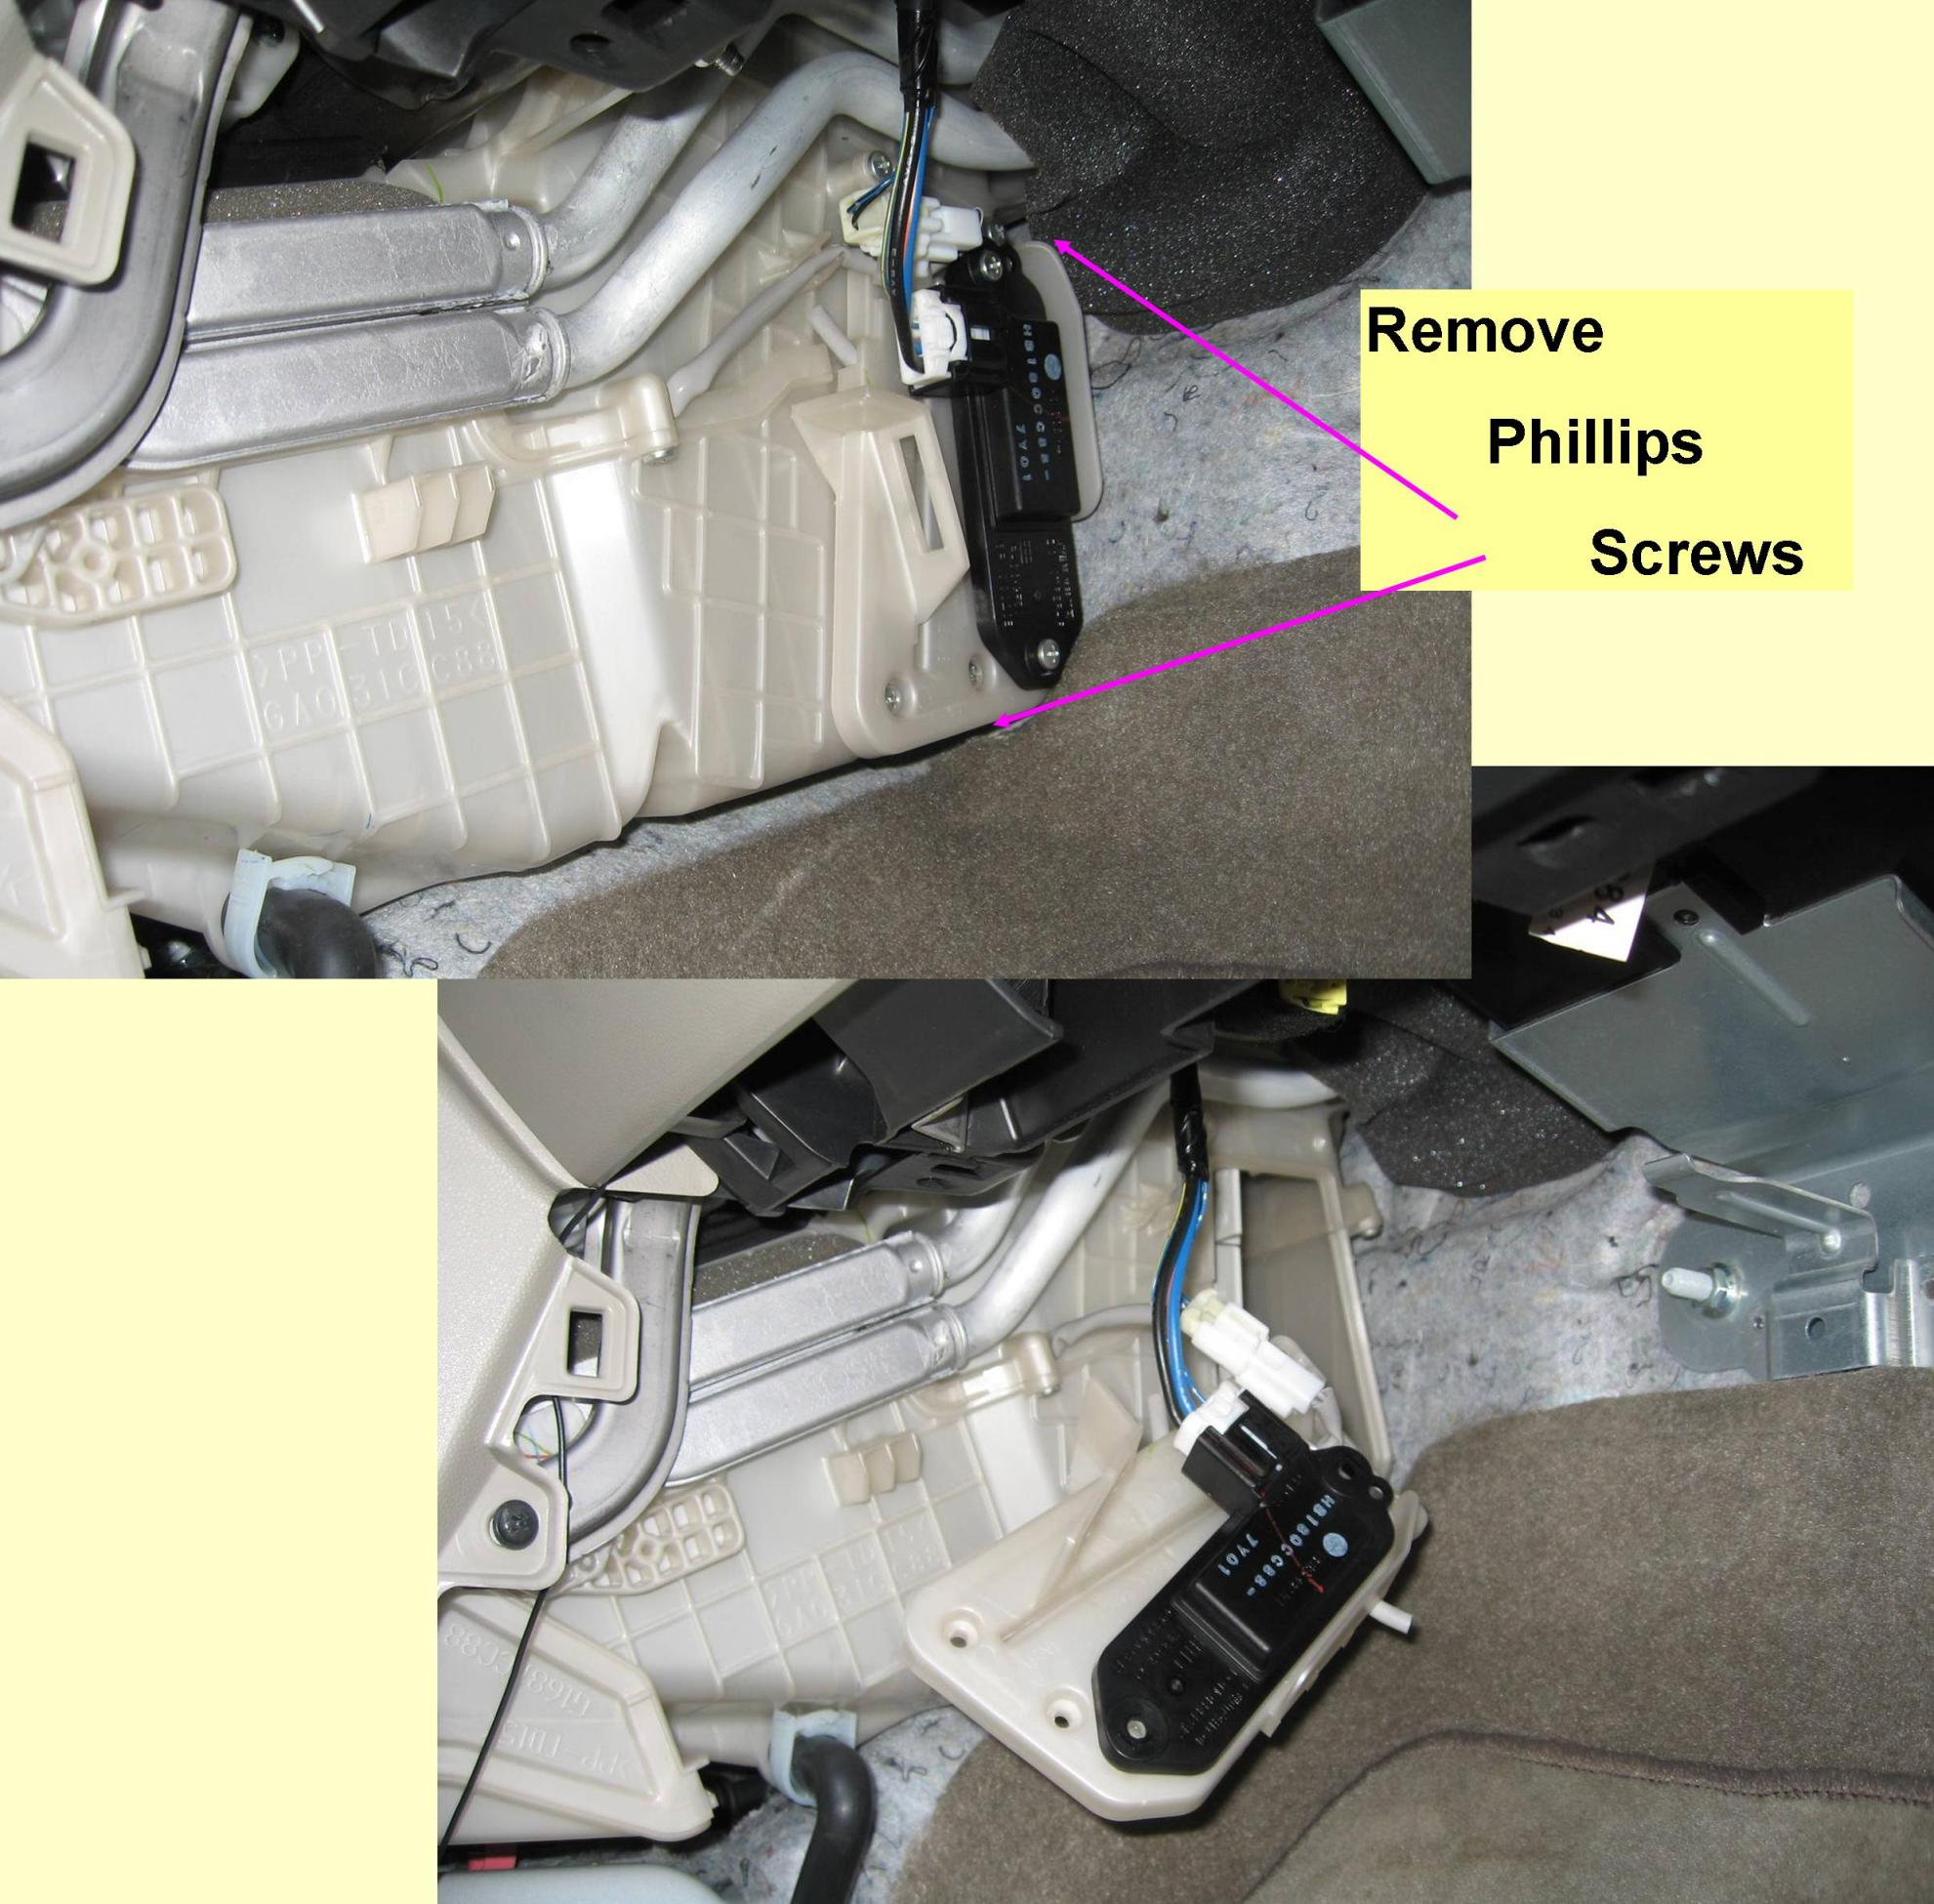 Forum Mazda 5 2007 Ide Dimage De Voiture 2009 Fuse Box How To Replace The Micron Air Cabin Filter